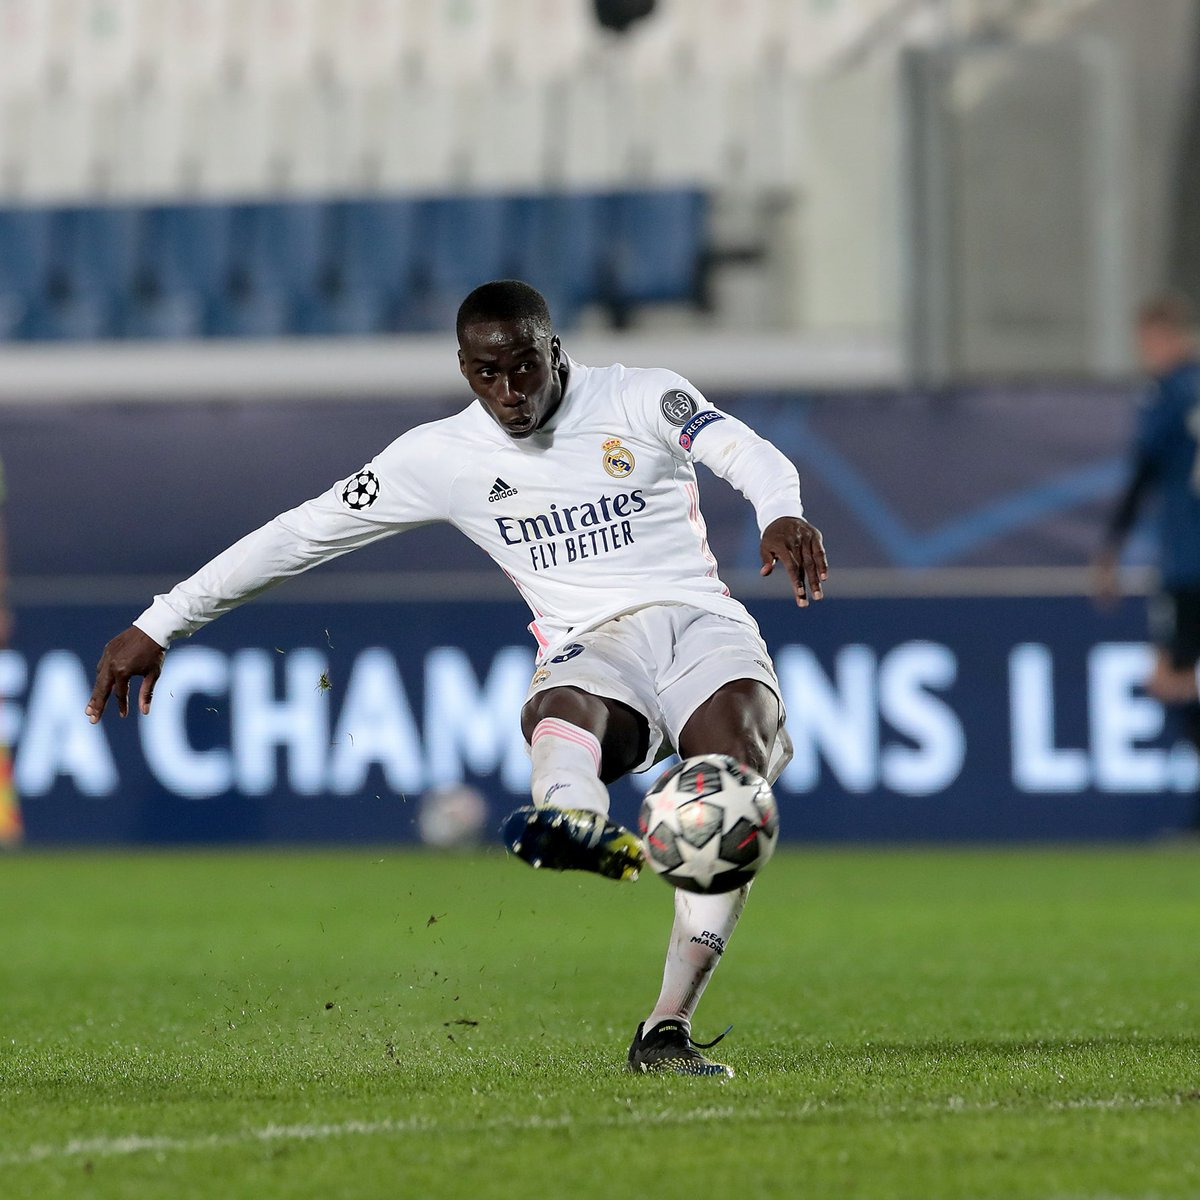 📸 Real Madrid left-back Ferland Mendy breaks the deadlock with his right foot ⚽️  #UCL